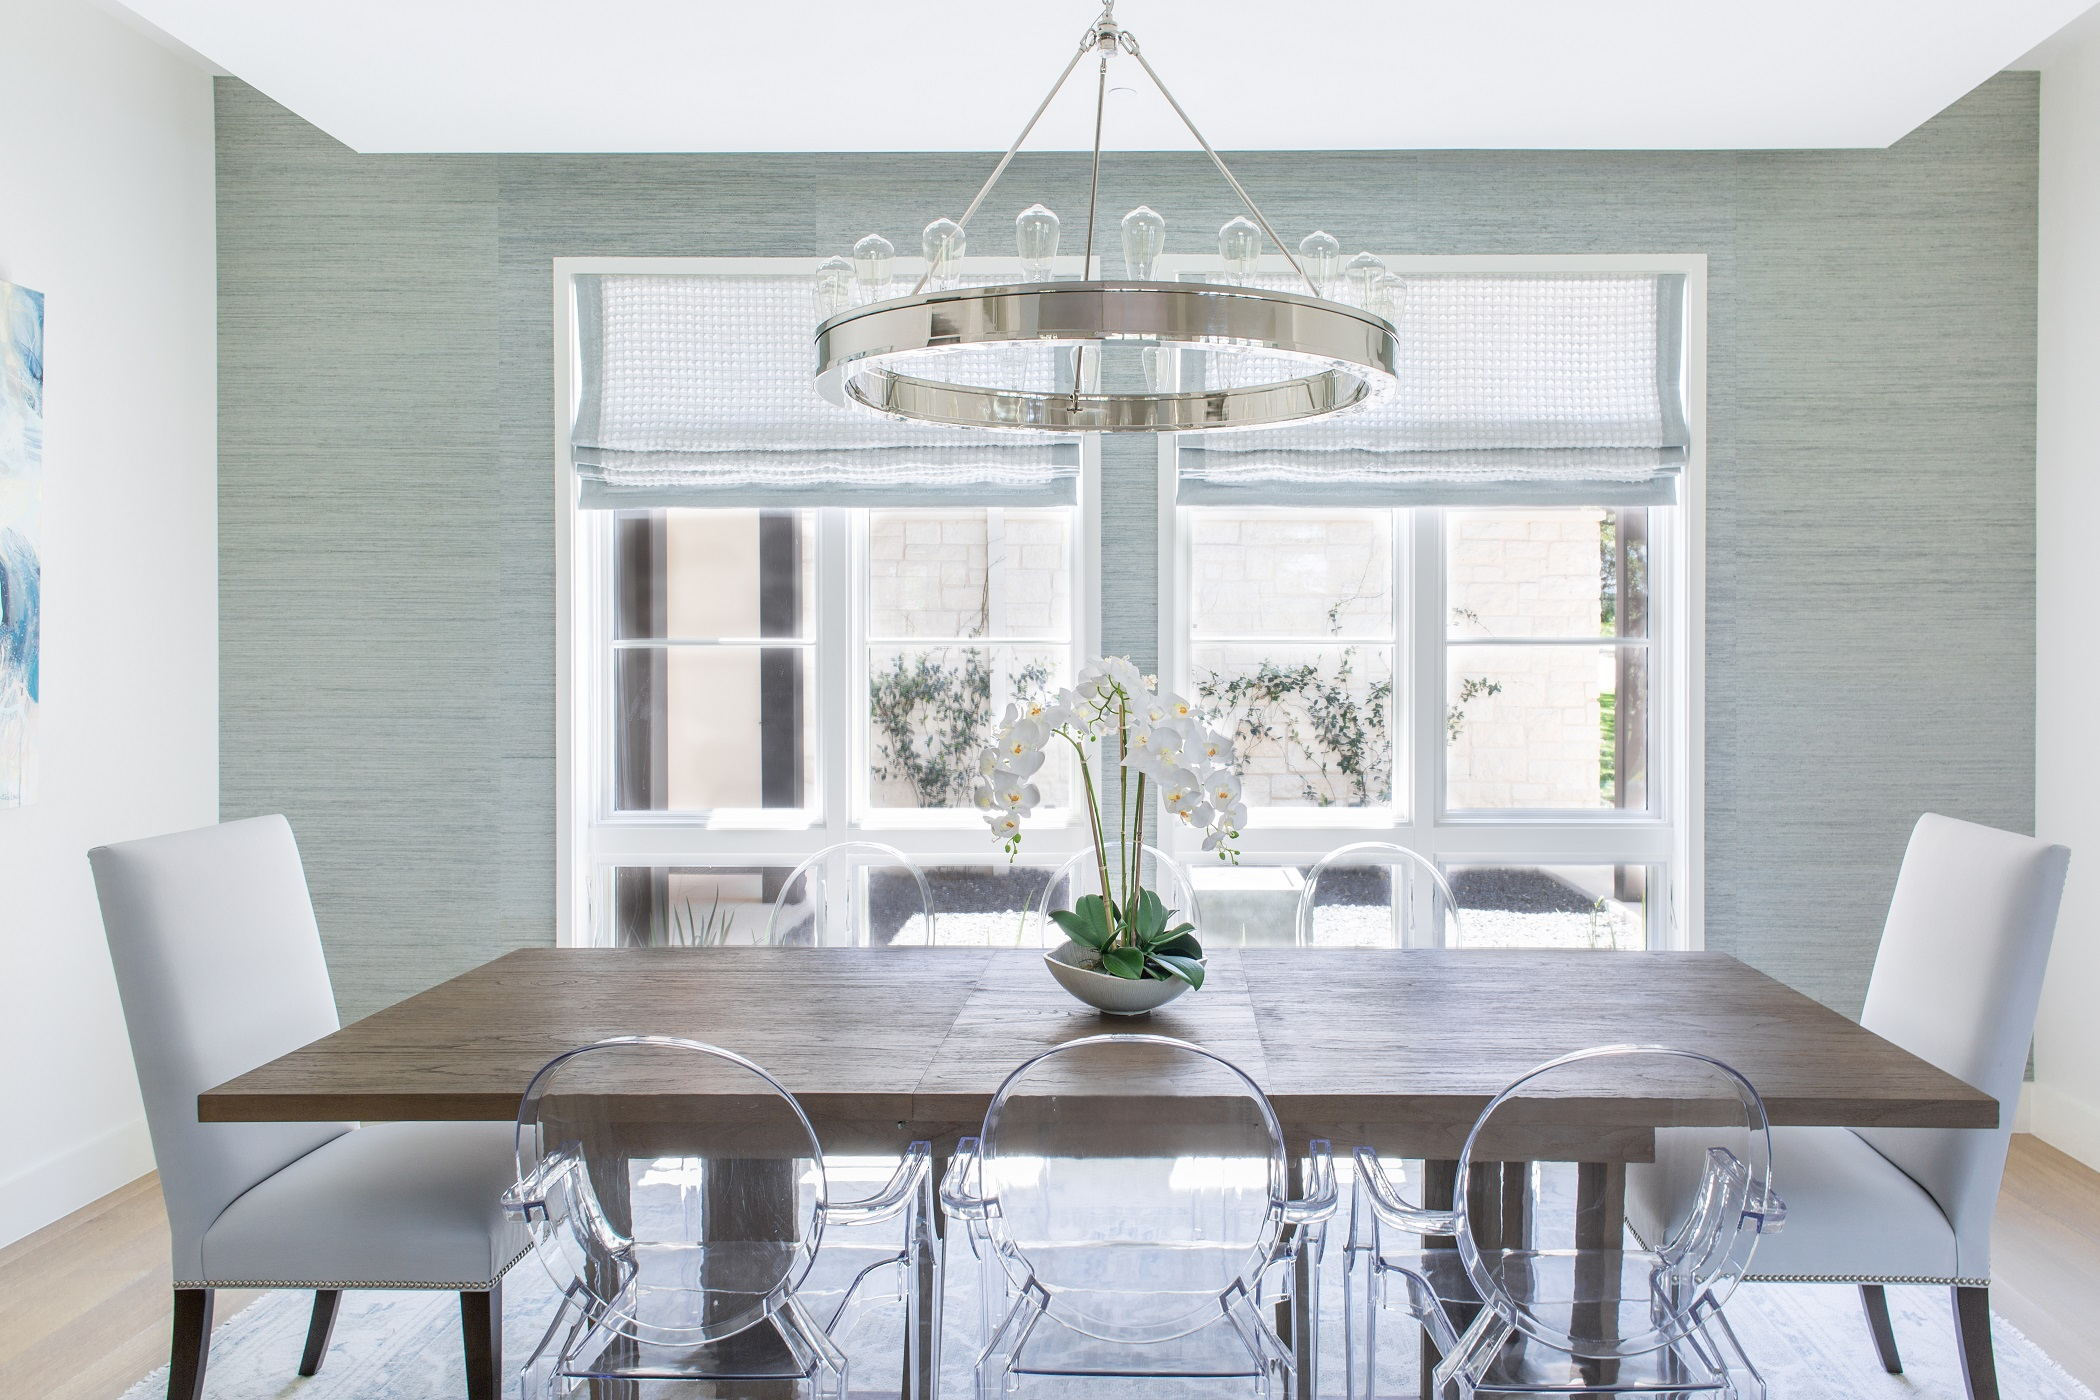 lake-austin-residence-dining-table